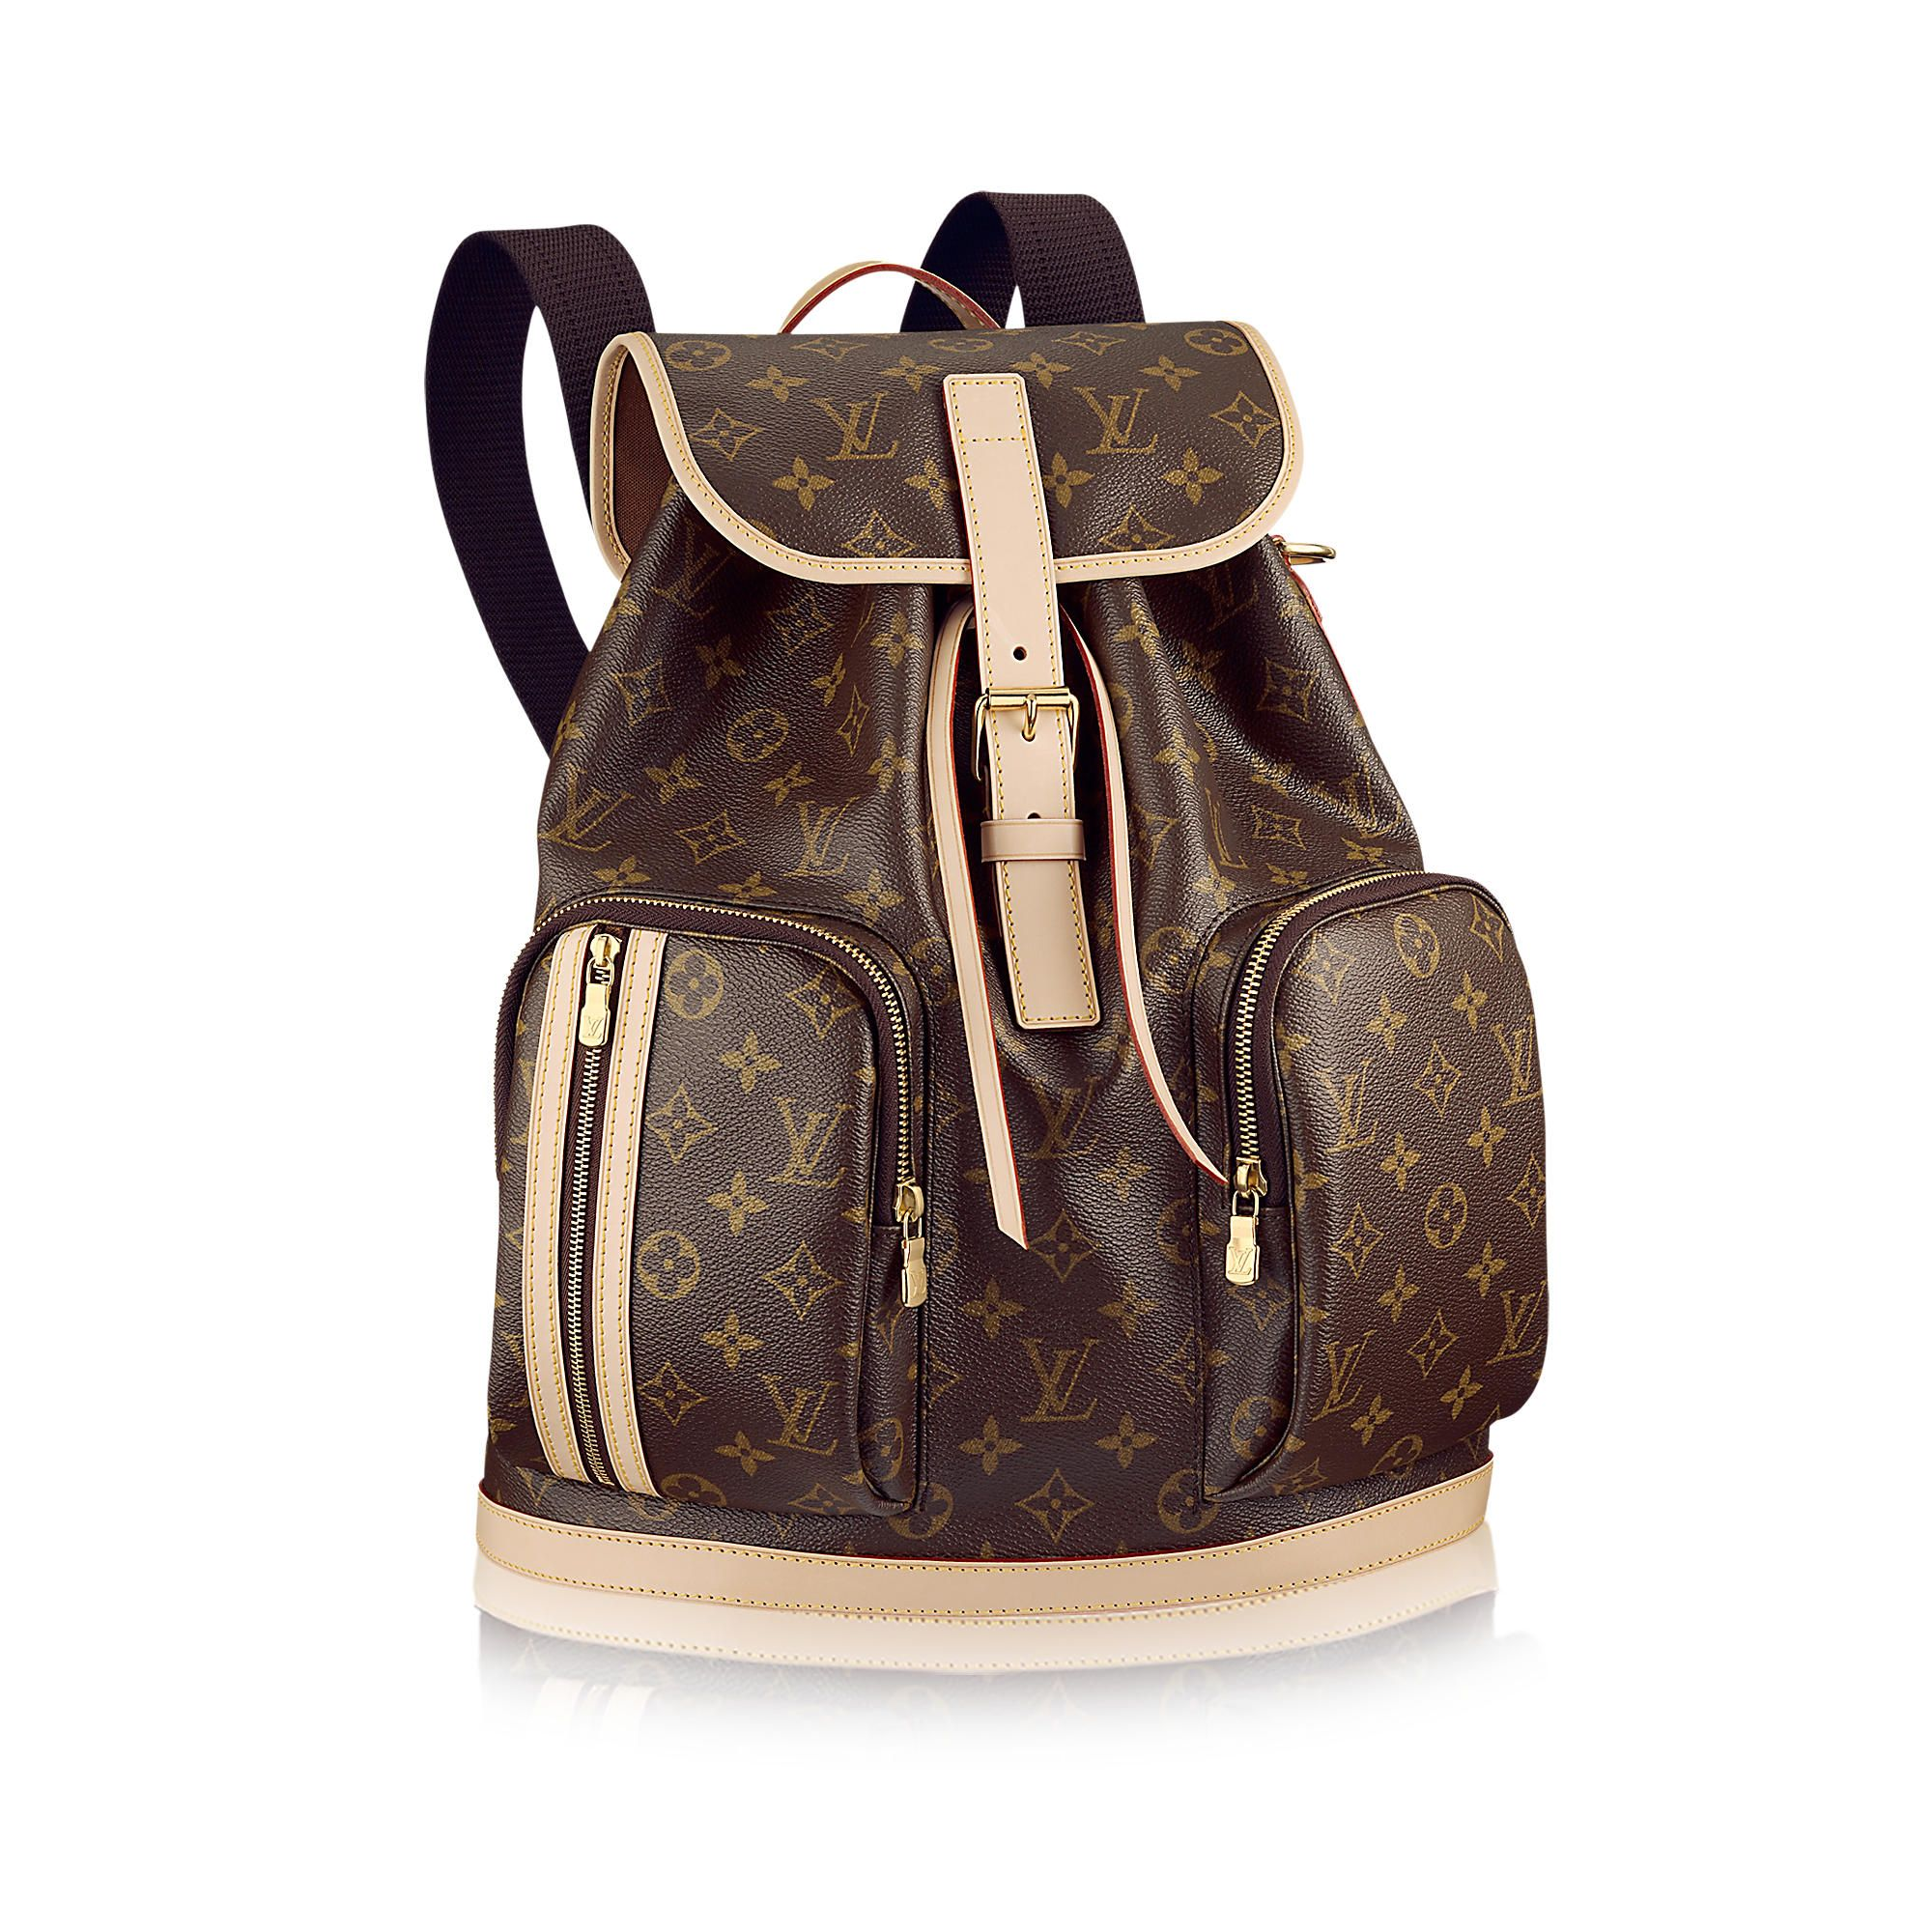 Discover Louis Vuitton Bosphore Backpack: The Bosphore Backpack in striking  Monogram canvas is a wonderfully practical bag. With its numerous pockets,  ...